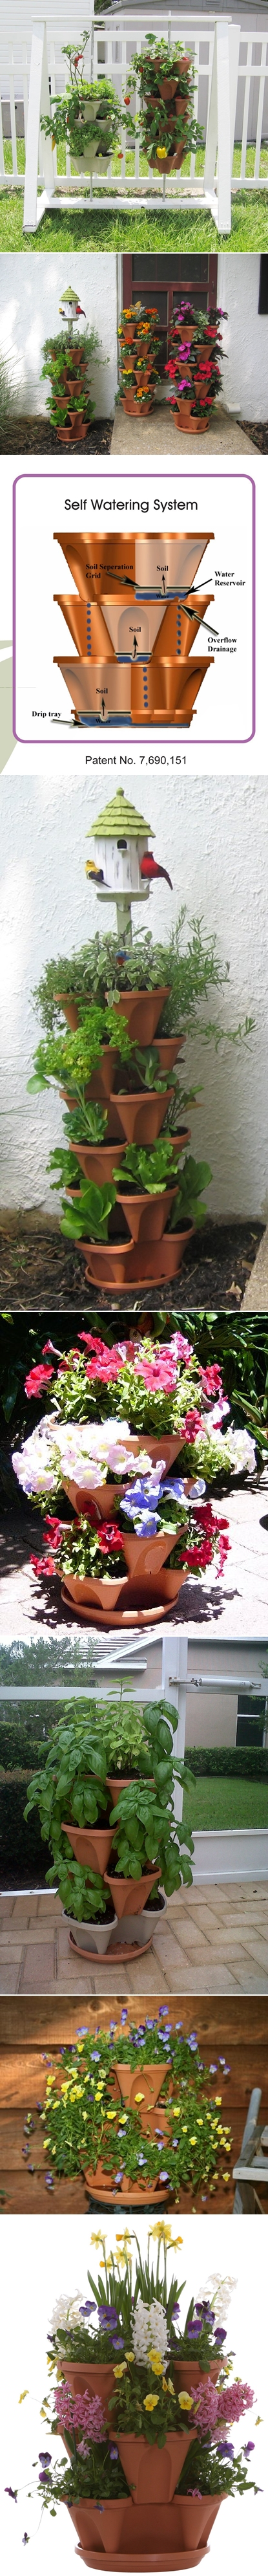 how to grow pretty flowers in vertical gardening pots with stack-a-pots DIY tutorial step by step instructions 2